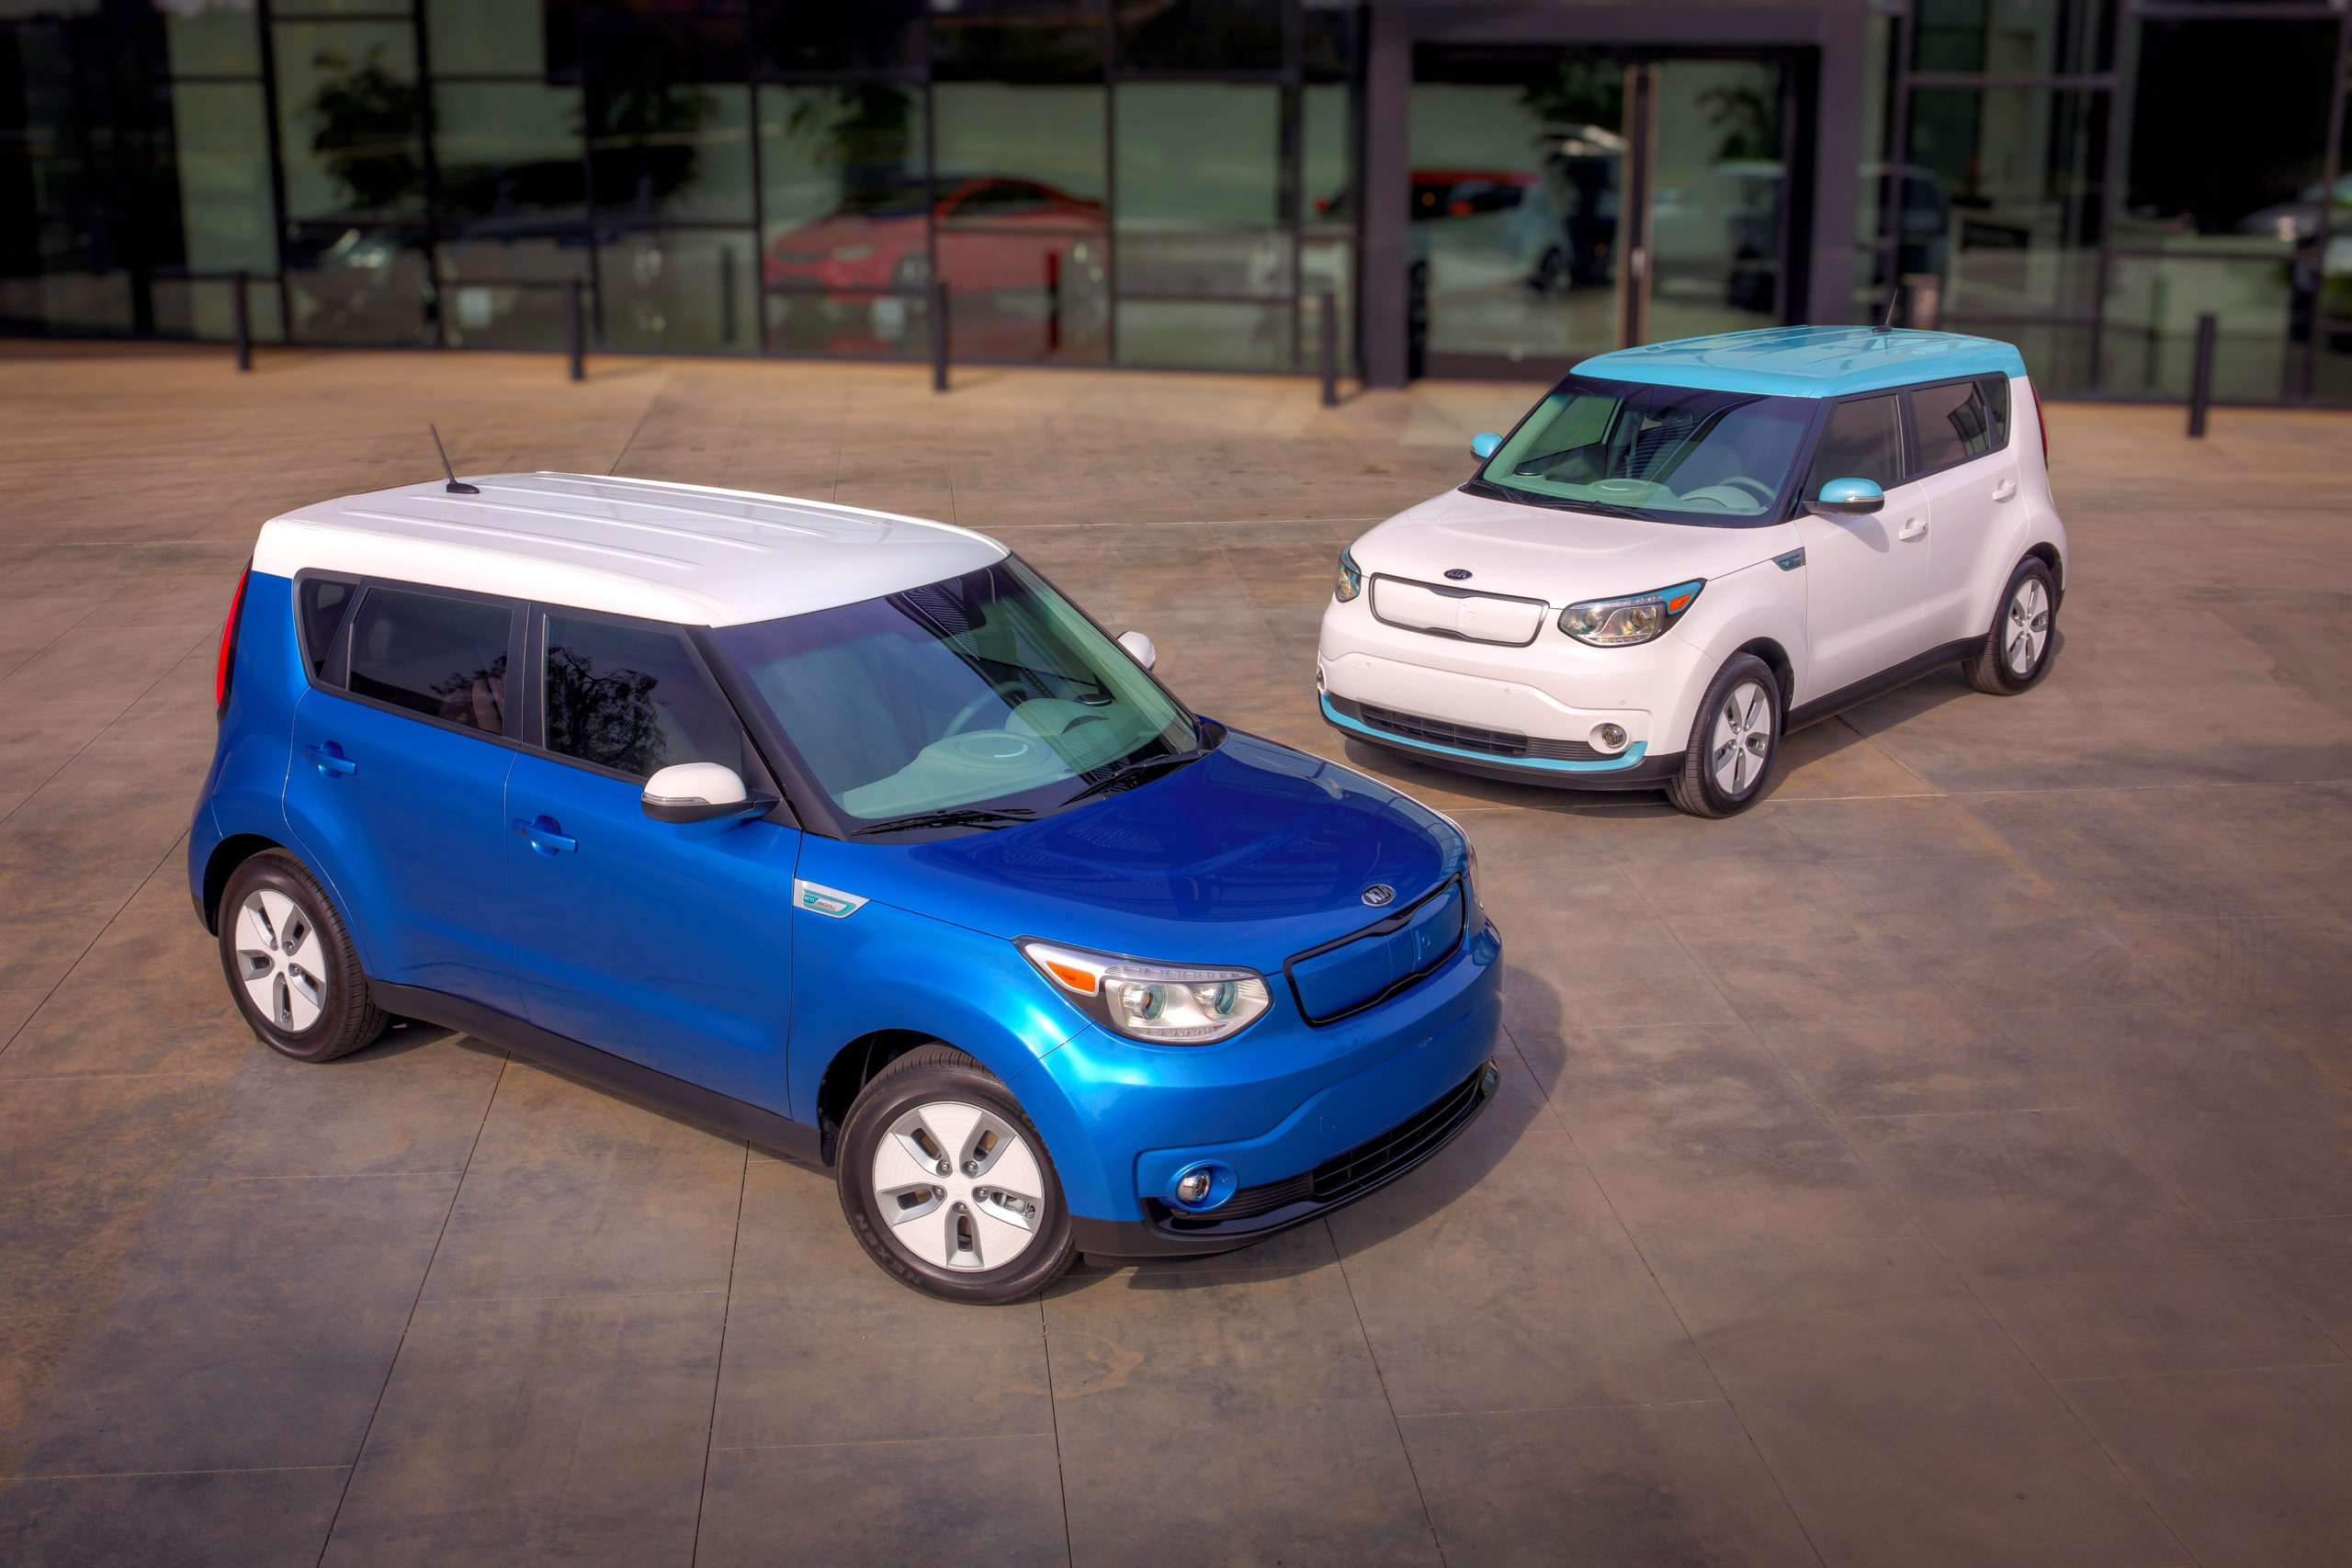 2015 Kia Soul Ev Electric Car Unveiled At Chicago Auto Show - 2022 Kia Soul Colors Release Date, Color Options, Change